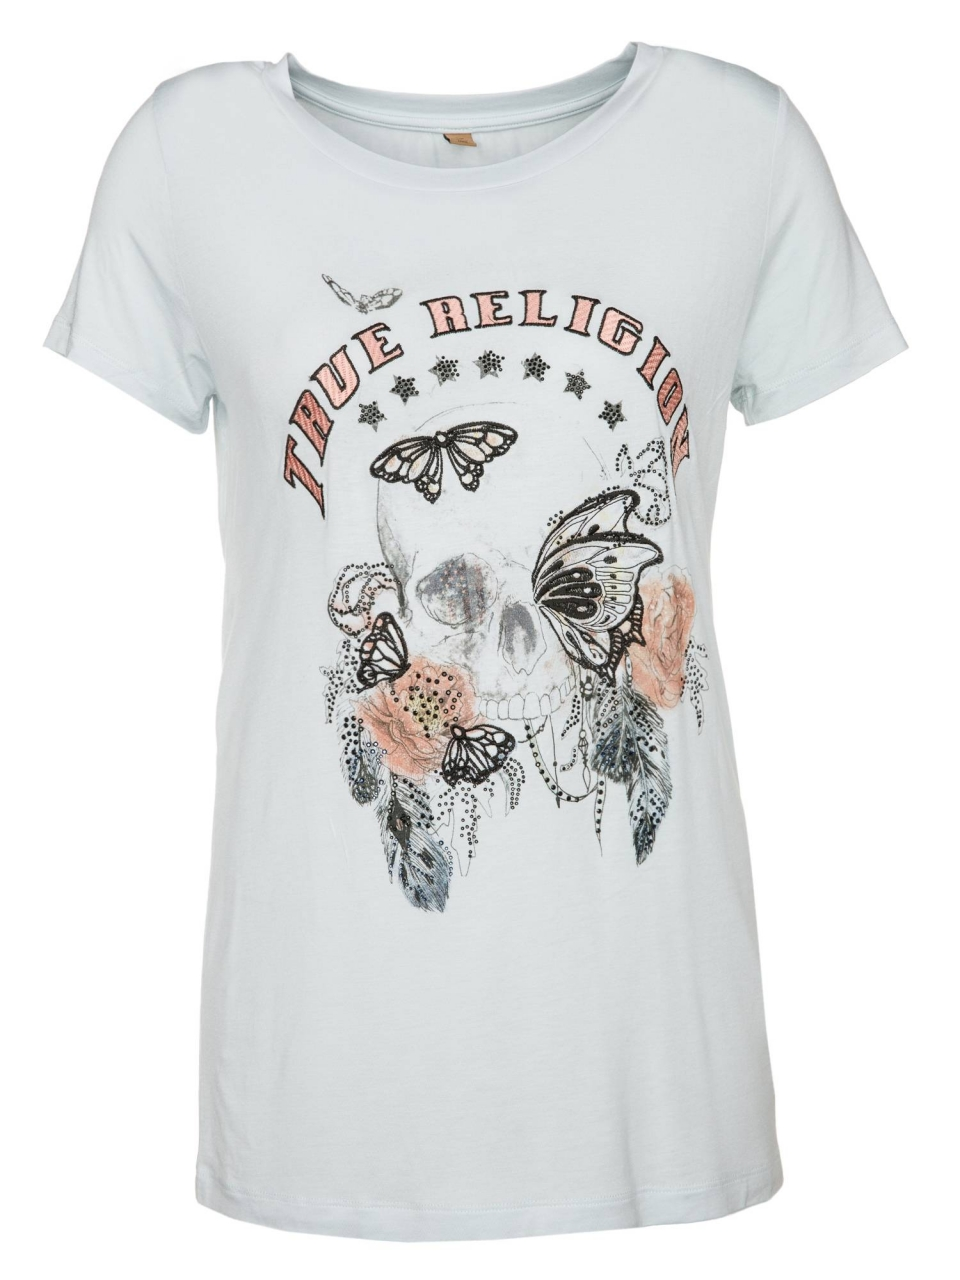 True Religion T-Shirt Butterfly Skull